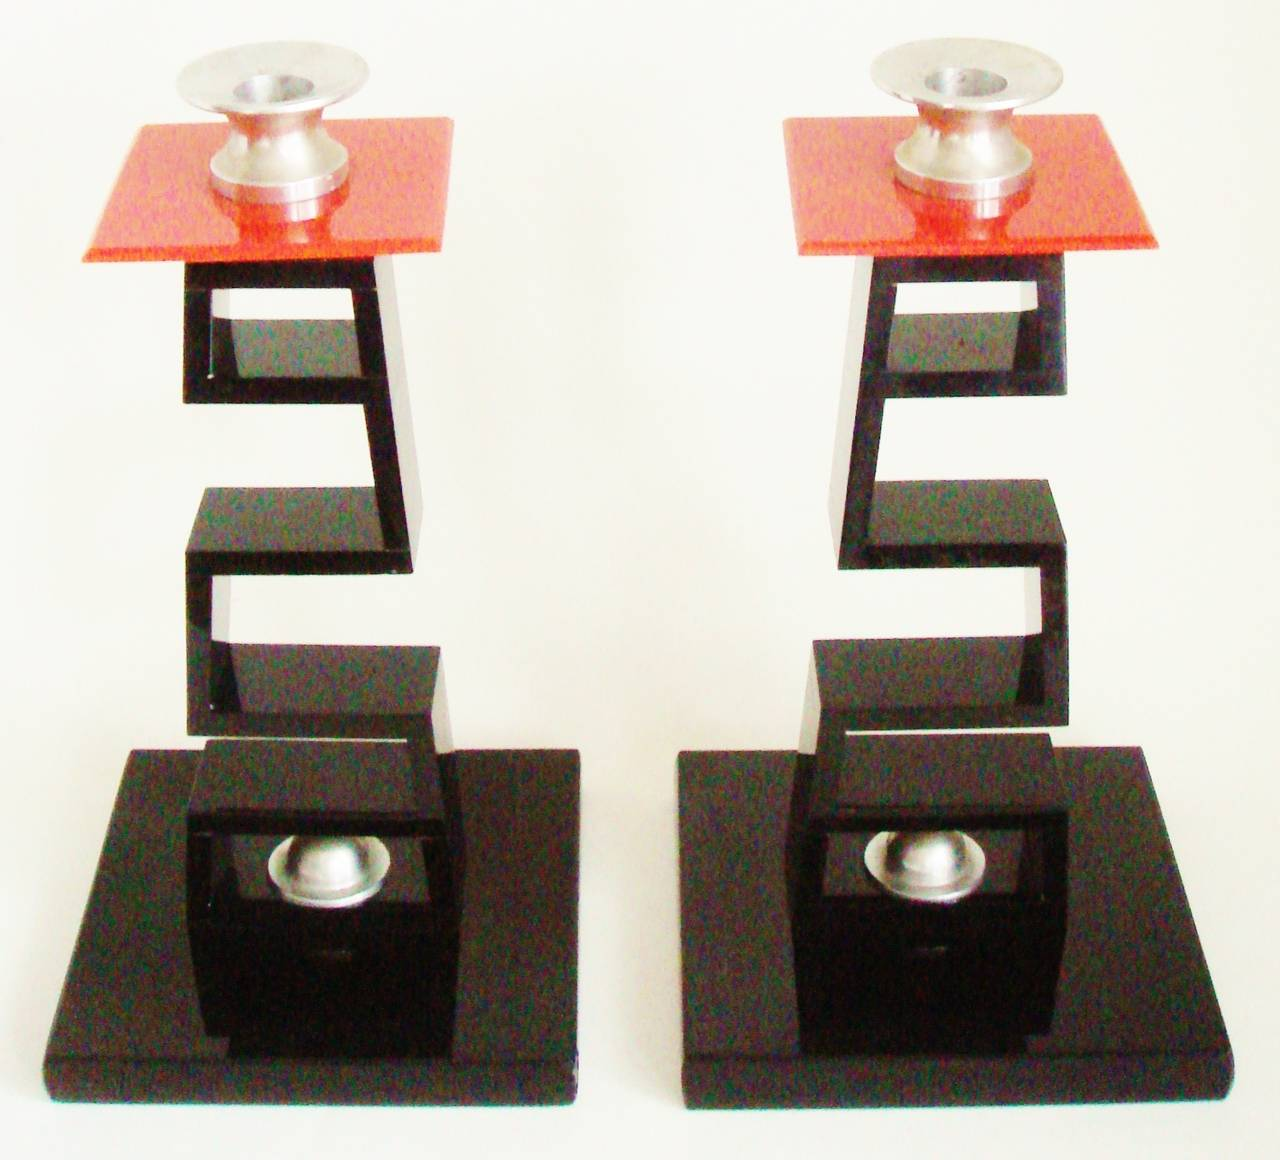 Hollywood Regency Pair of Large American Asian Inspired Candlesticks in the Manner of James Mont For Sale